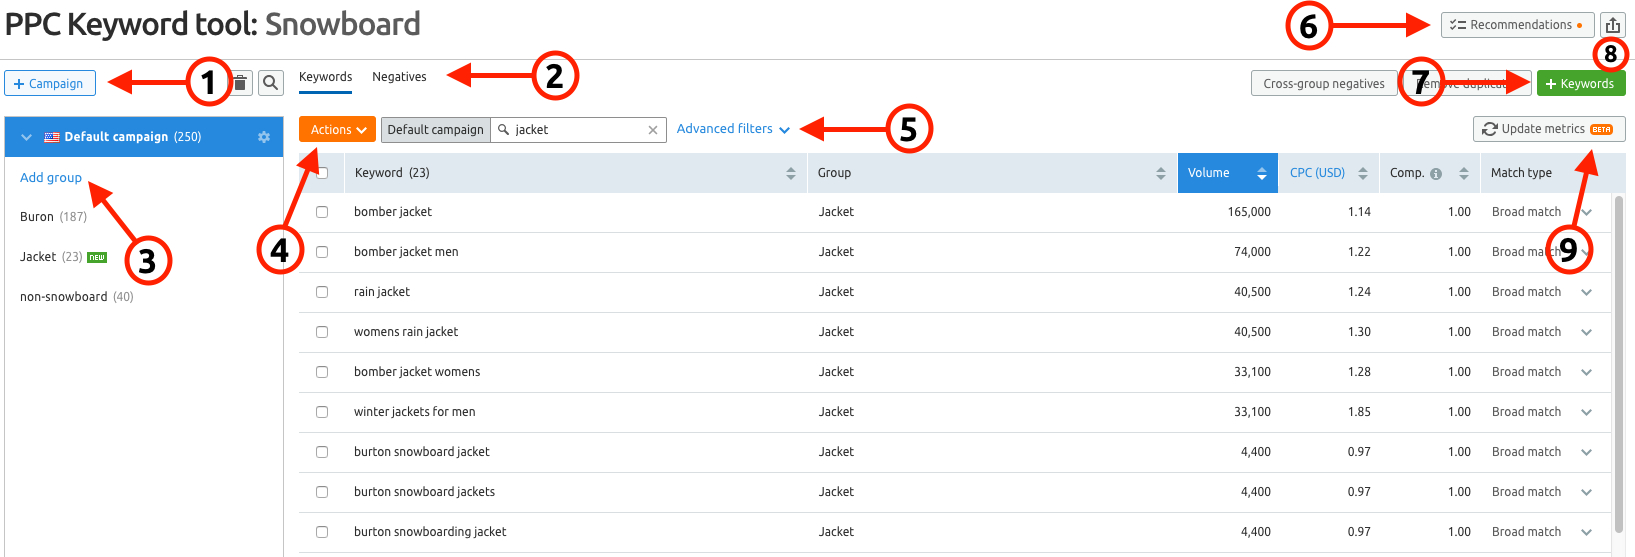 Adding Keywords and Ad Groups to PPC Keyword Tool image 1